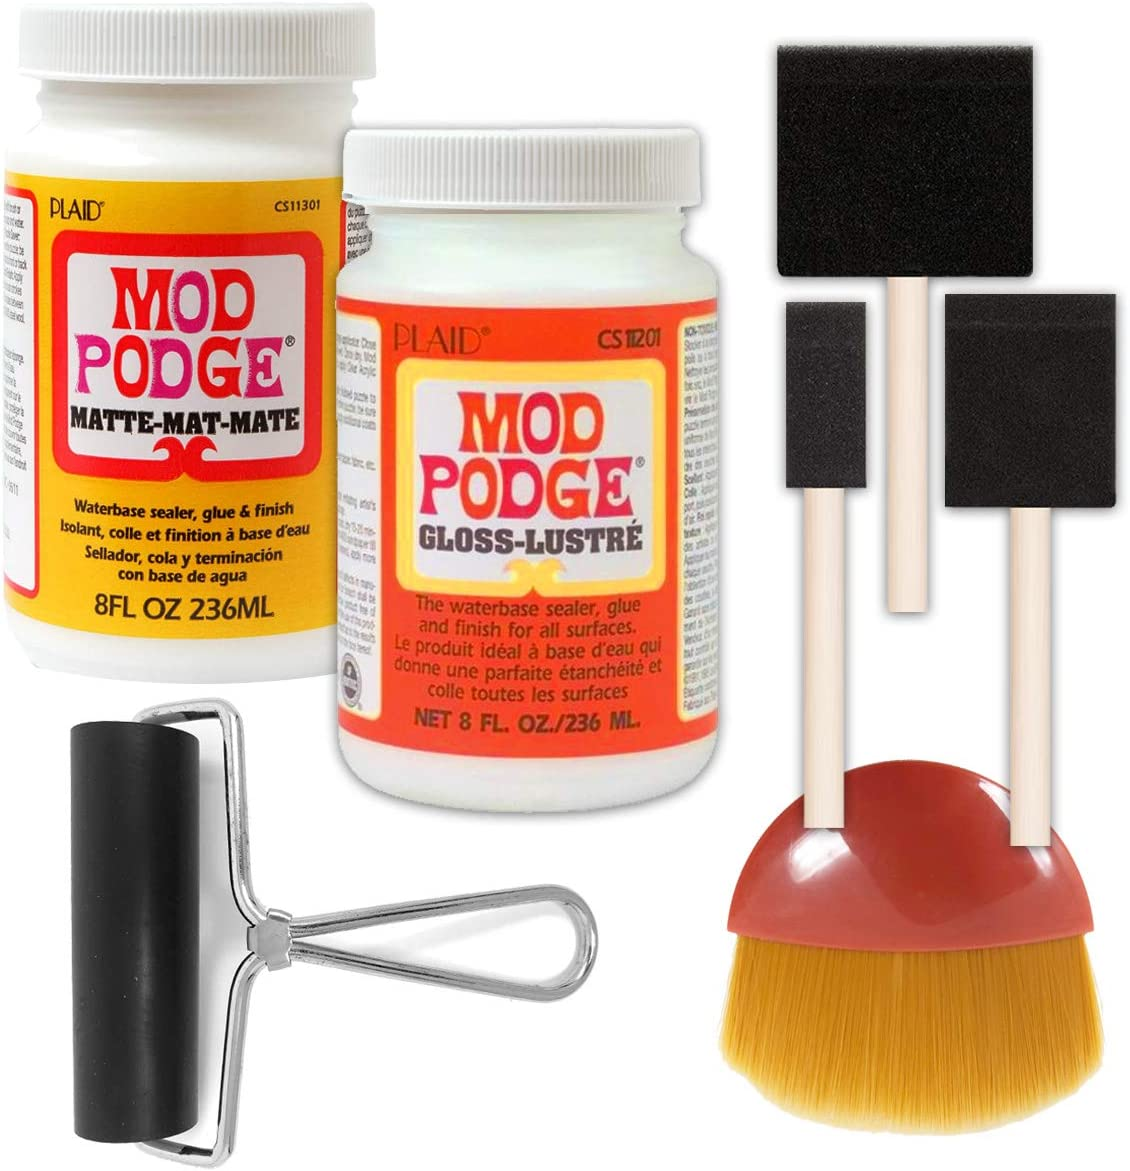 Mod Podge Bundle, 8 Ounce Gloss and Matte Medium, 3 Pixiss Foam Brushe, 4 Inch Brayer, Waterproof Sealer